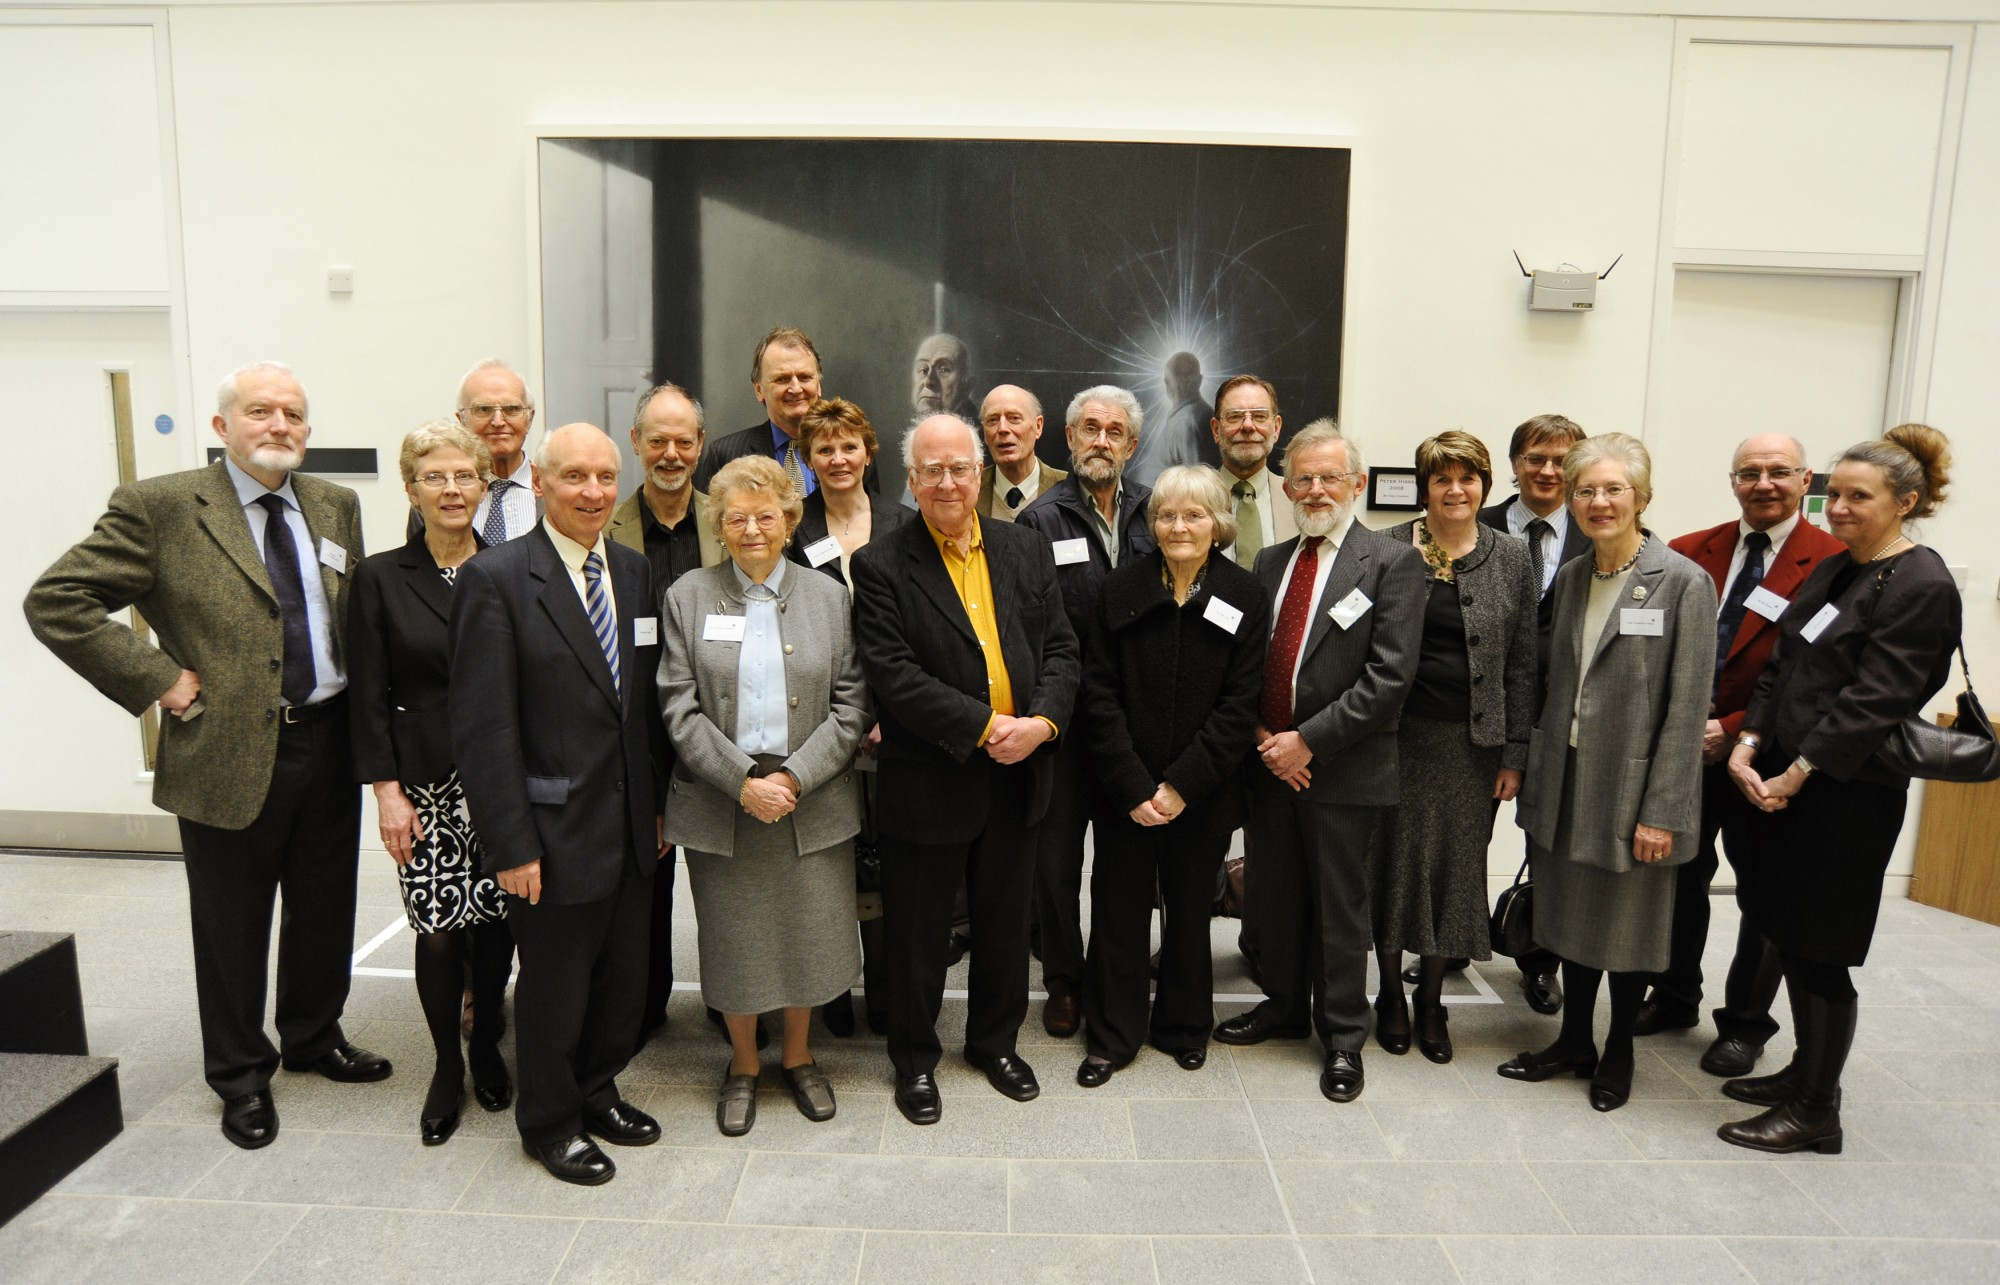 Peter Higgs pictured with former members of the Taiit Institute of Mathematical Physics and their partners.